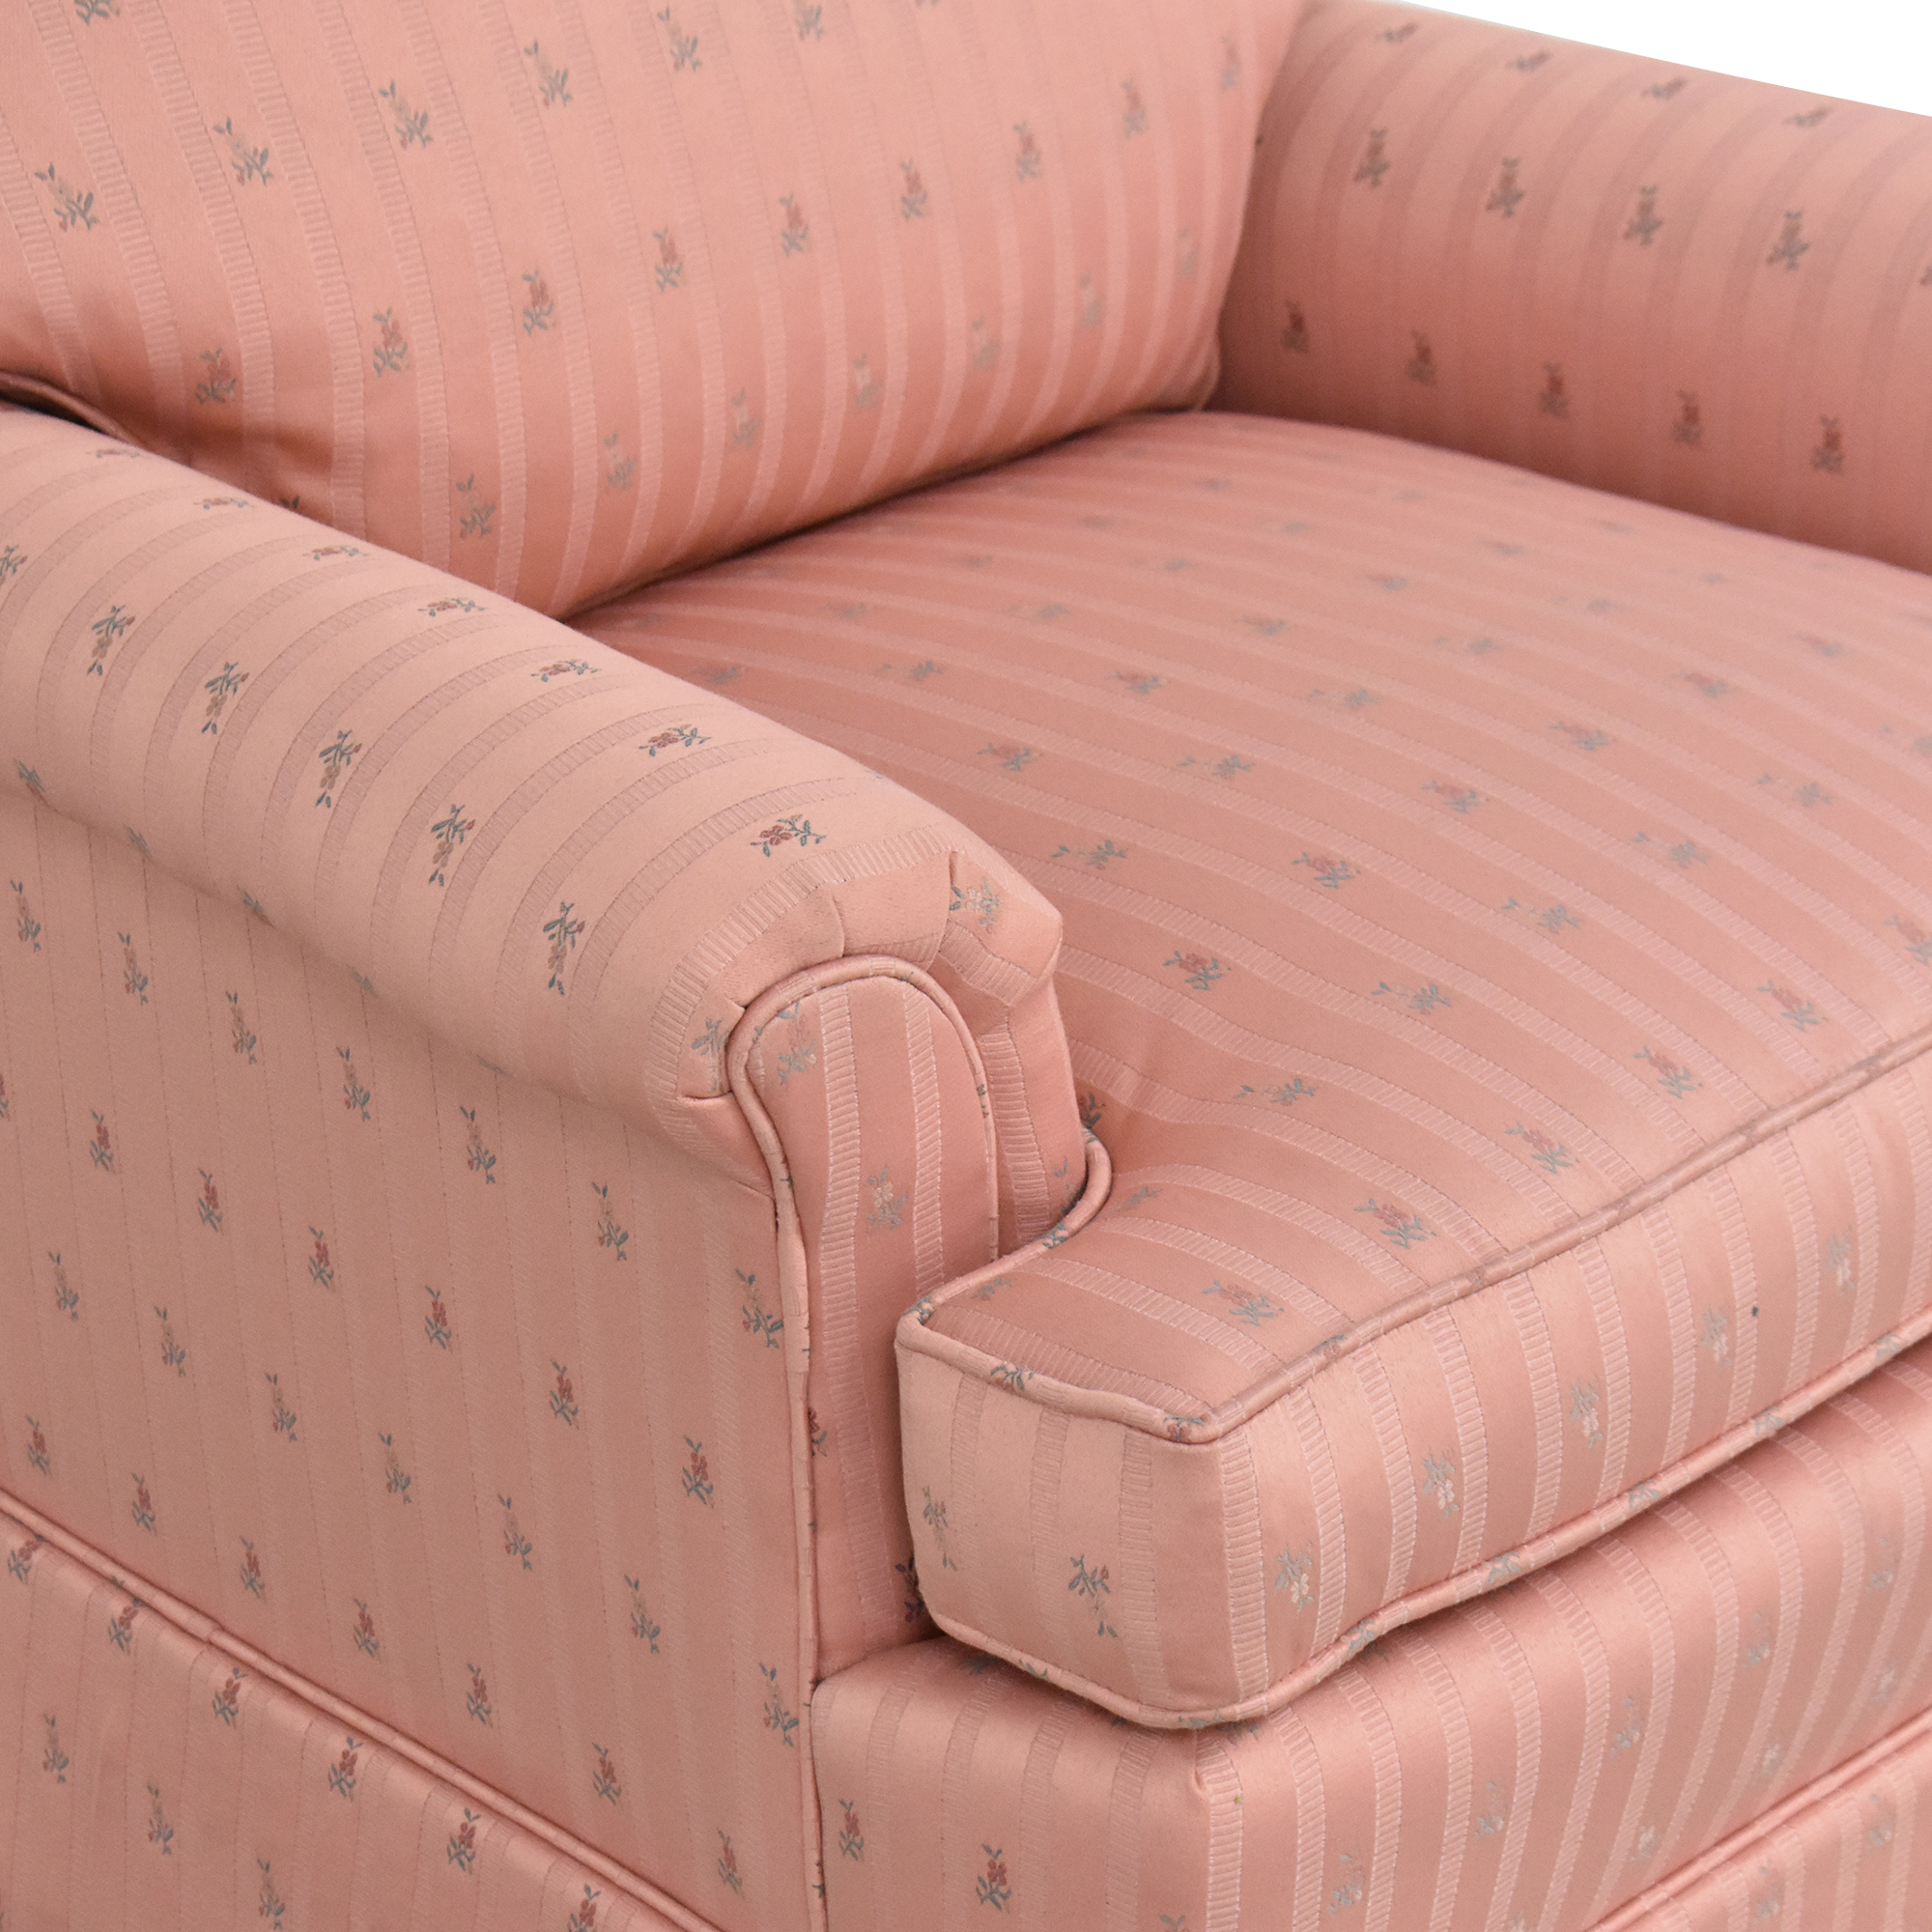 Perfection Furniture Co. Perfection Furniture Skirted Accent Chair used